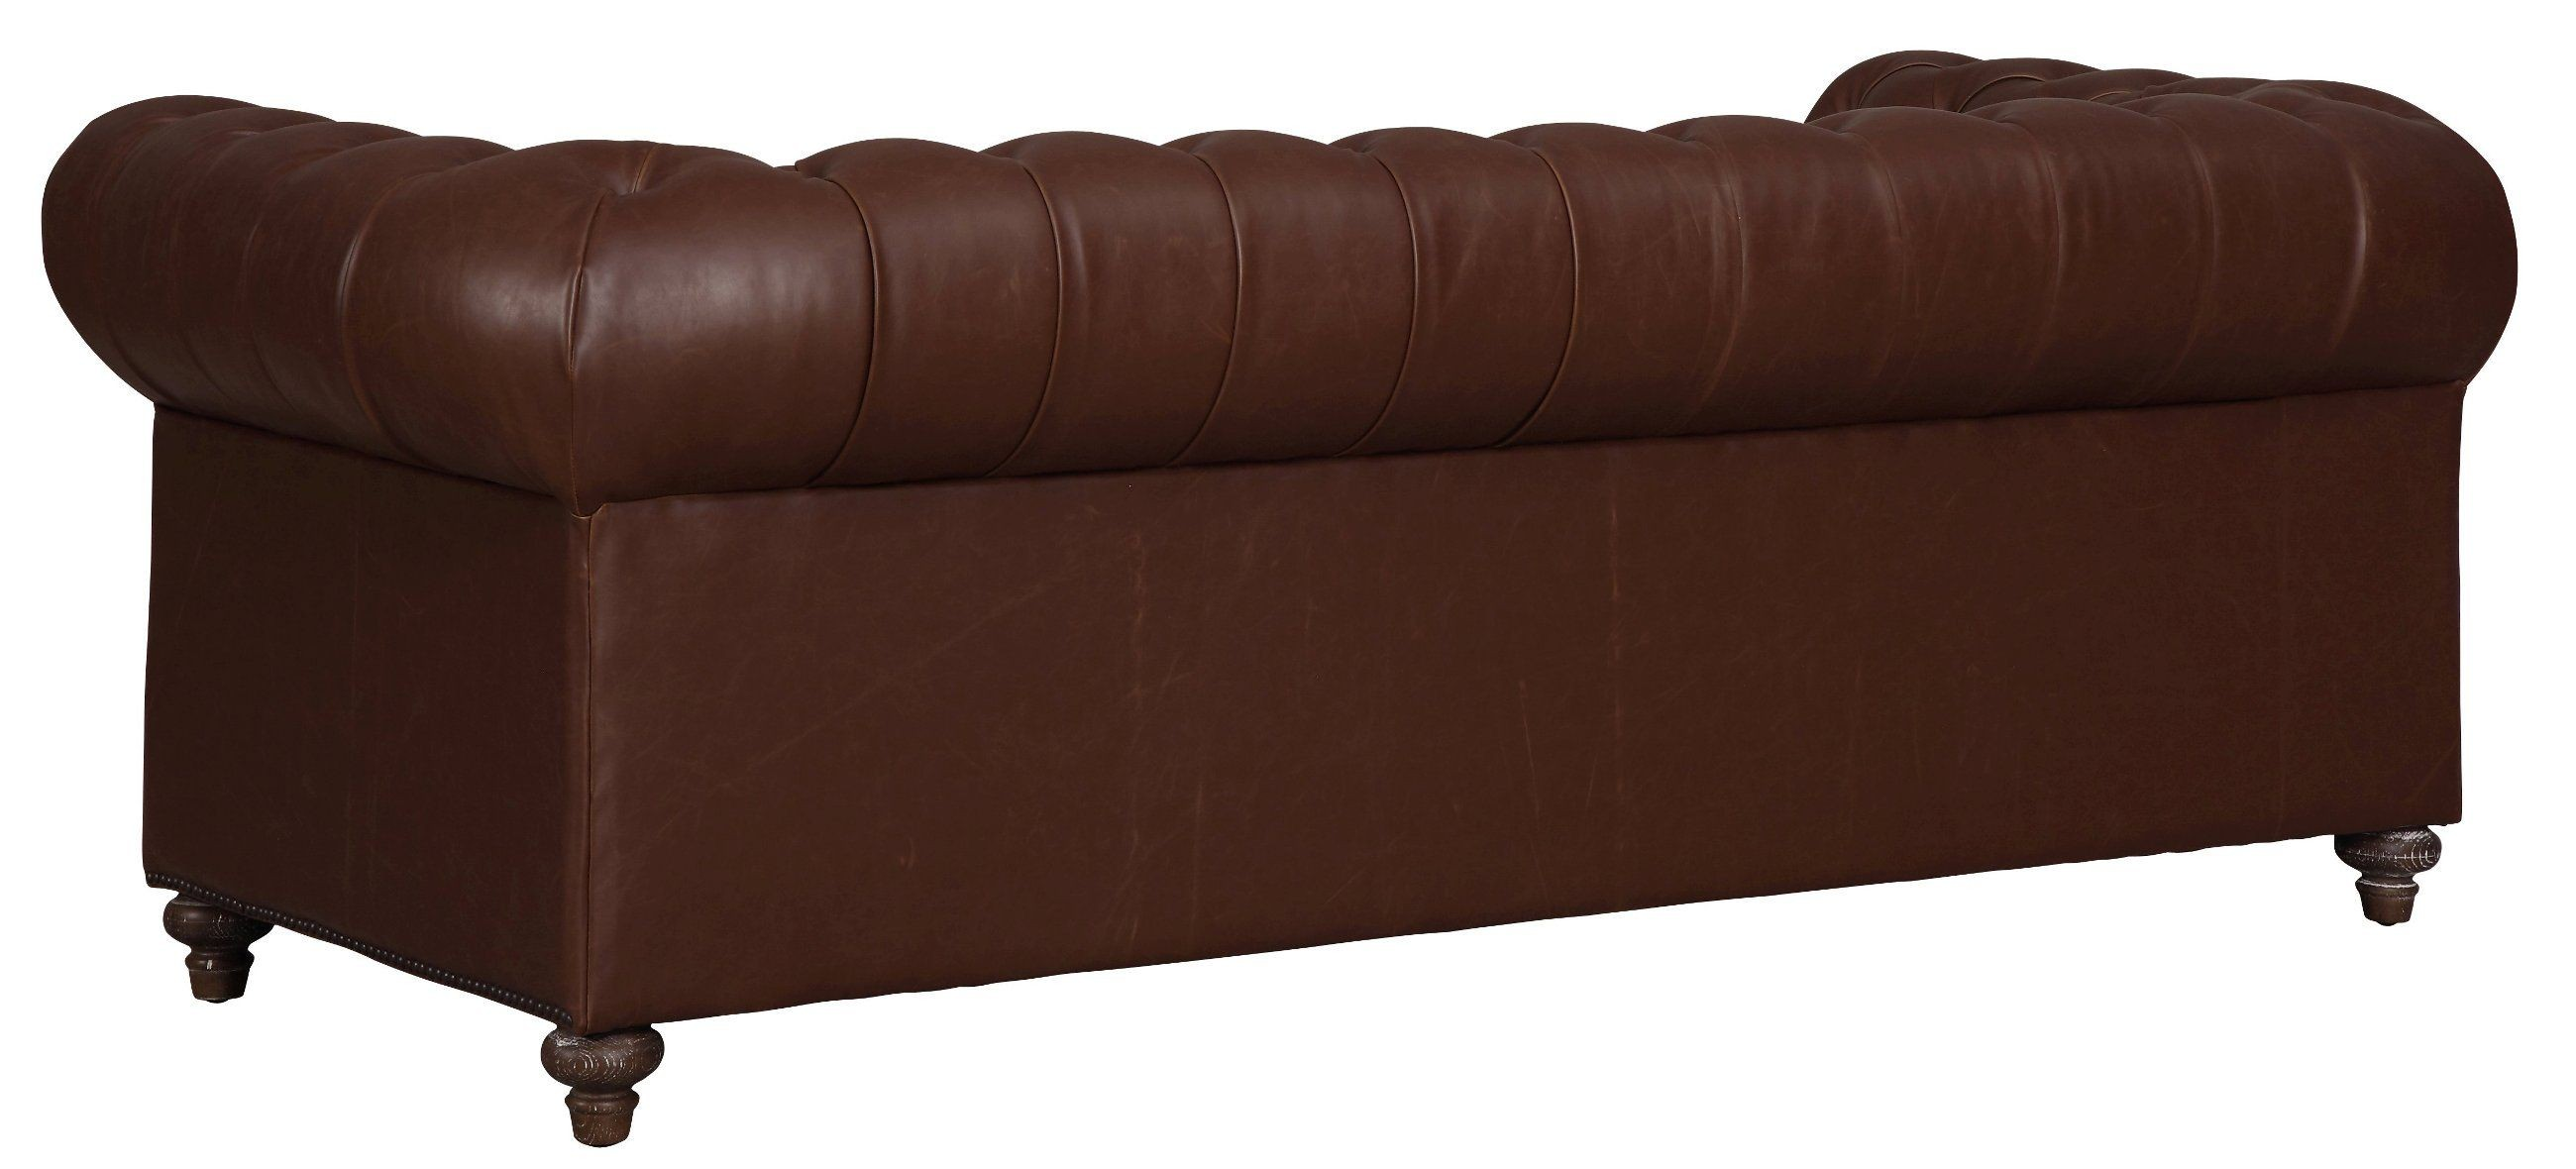 vintage leather sofas durango antique brown leather sofa from tov coleman 3238